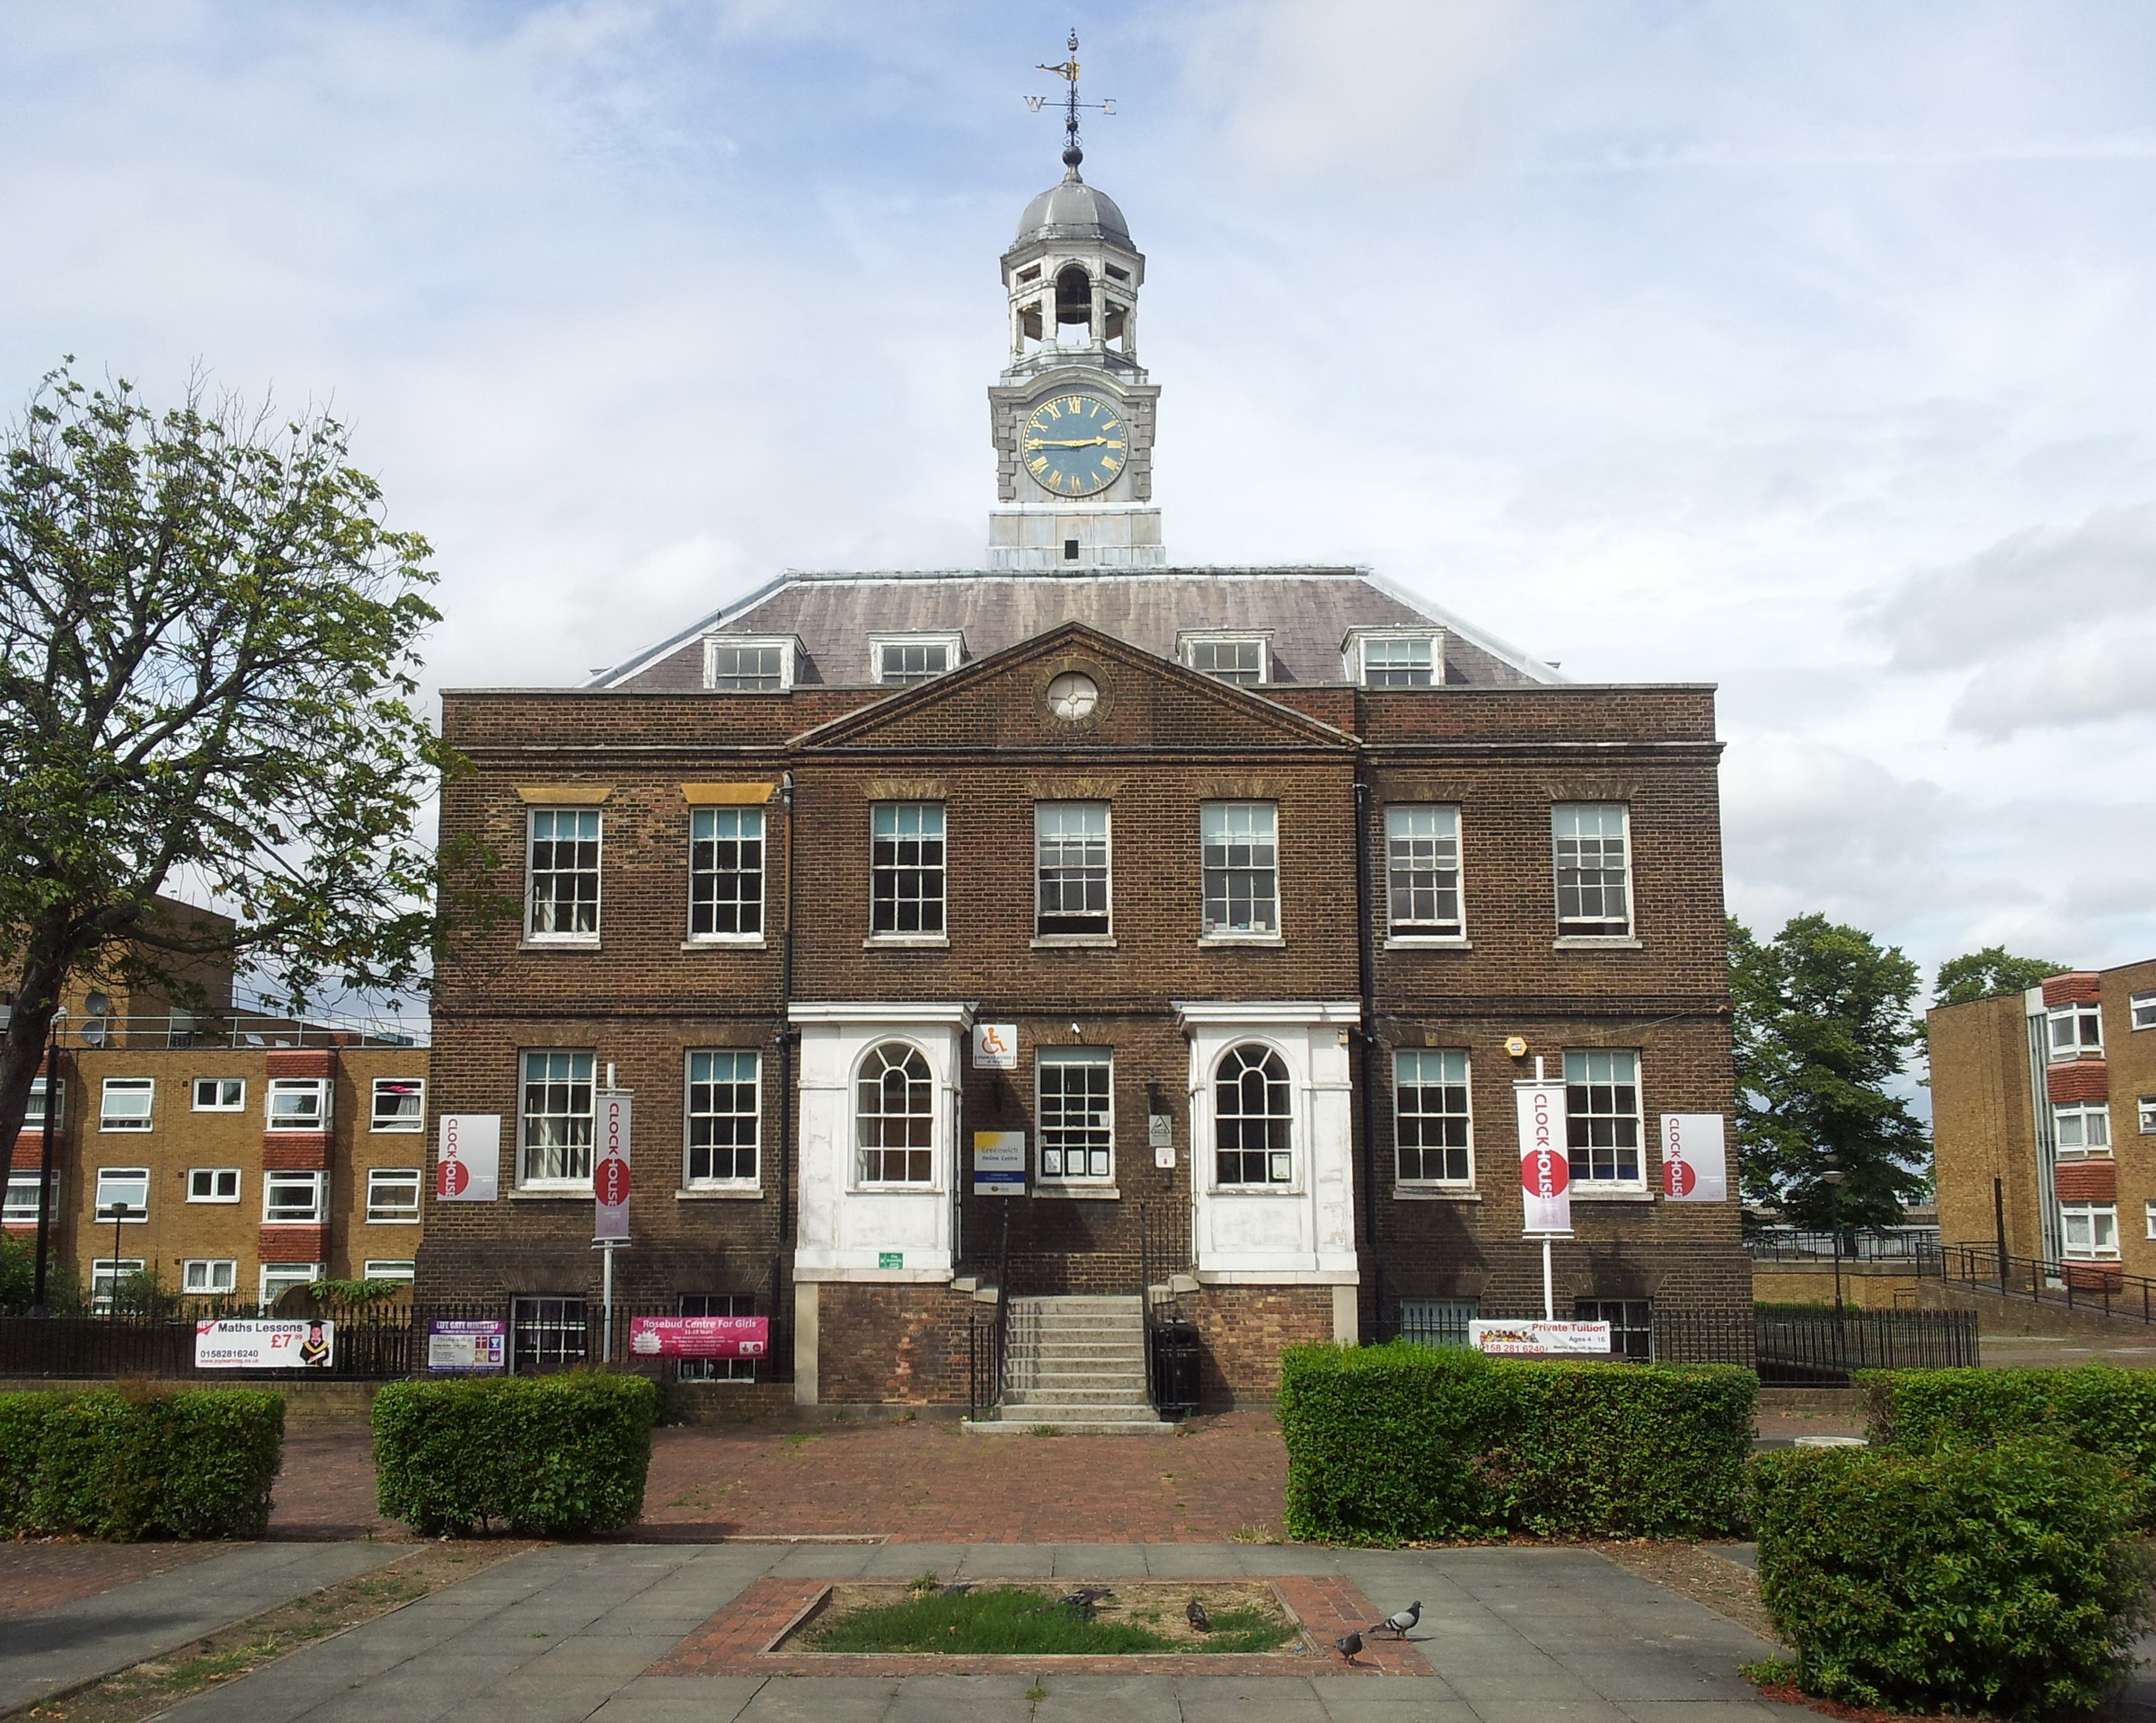 275-London__Woolwich_Dockyard__Clockhouse_Community_Centre.jpg